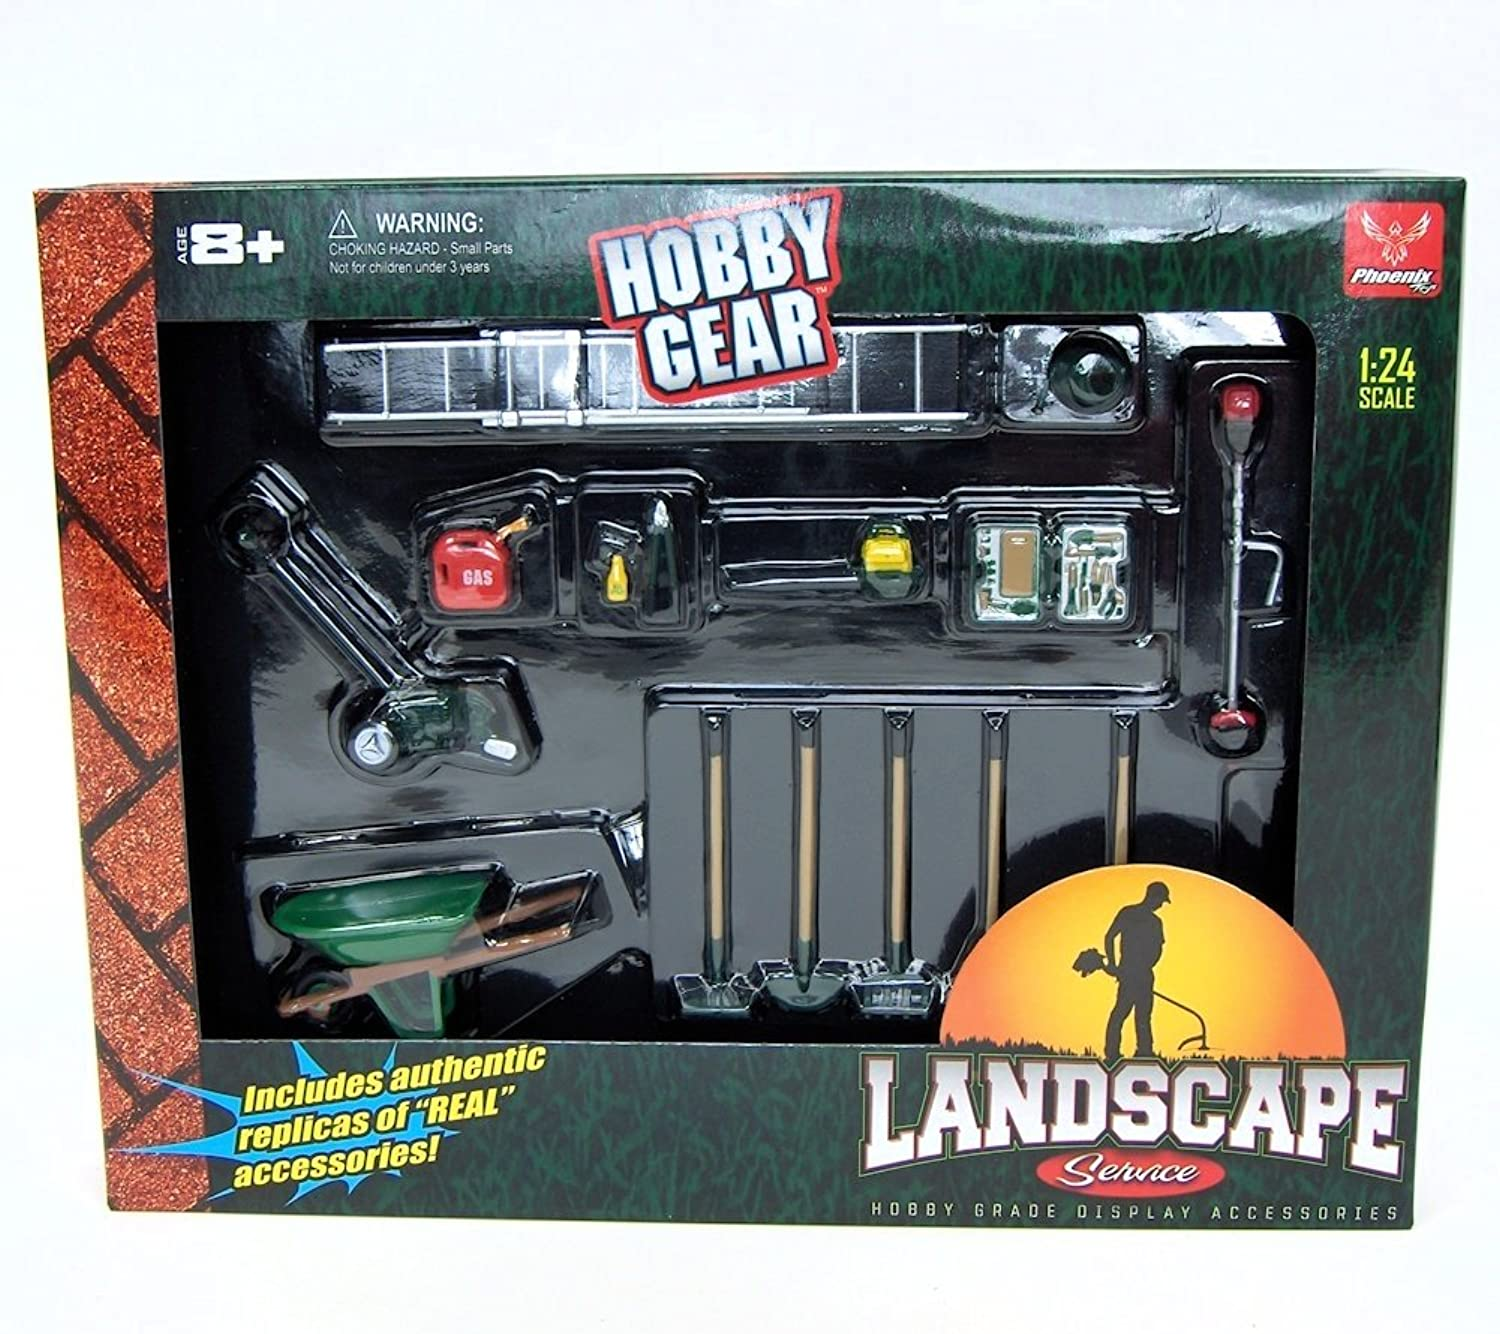 1 24th Landscaping Service 14pc Set by Hobby Gear